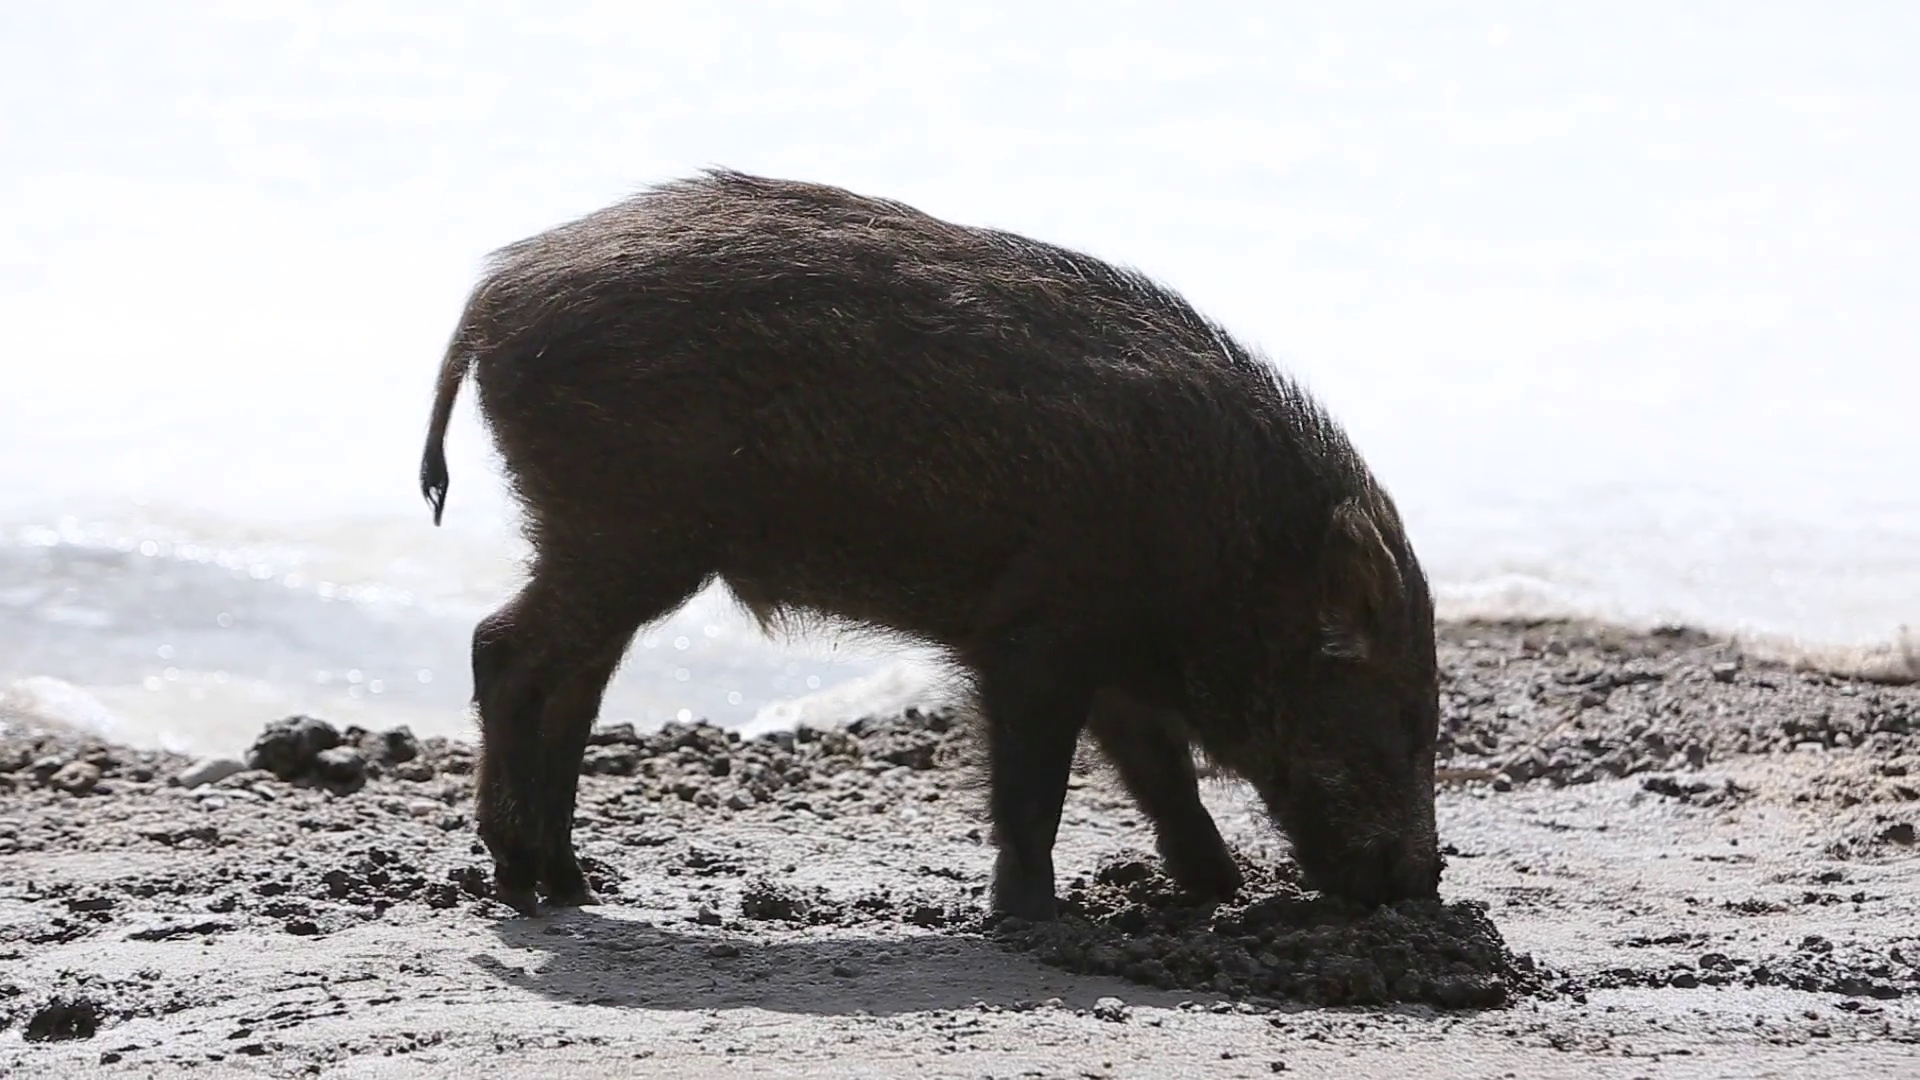 videoblocks-wild-boar-using-snout-to-dig-while-walking_s6pmwqplkz_thumbnail-full01